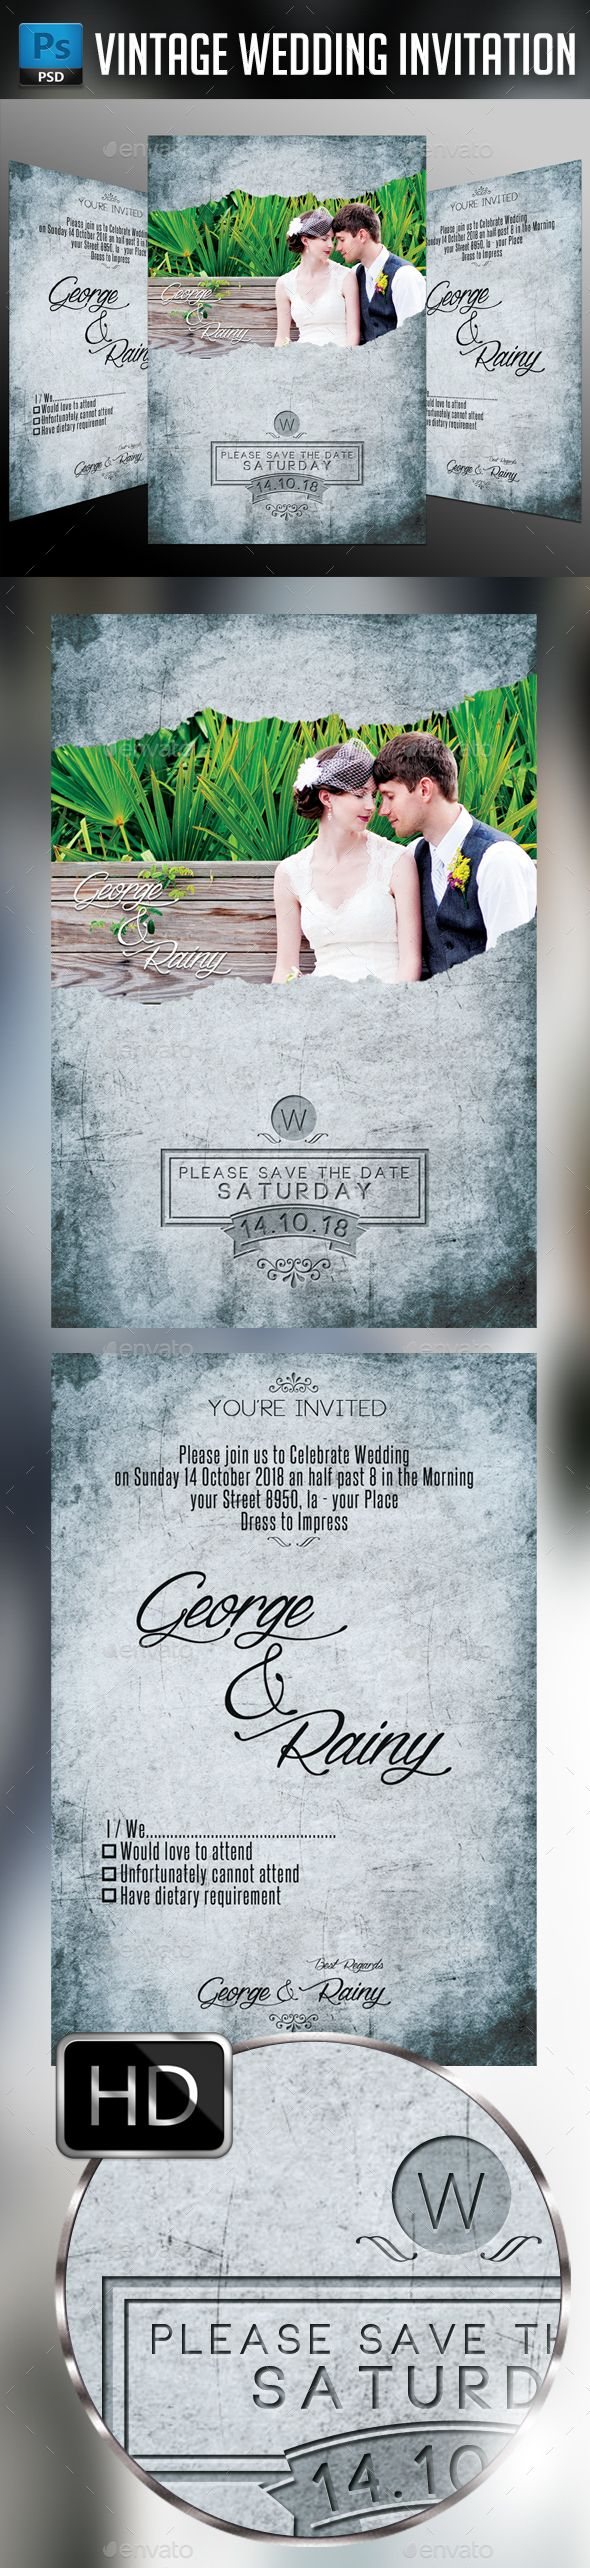 vintage wedding invitation text%0A Vintage Wedding Invitation  u     Photoshop PSD  save the date  invite  u      Available here